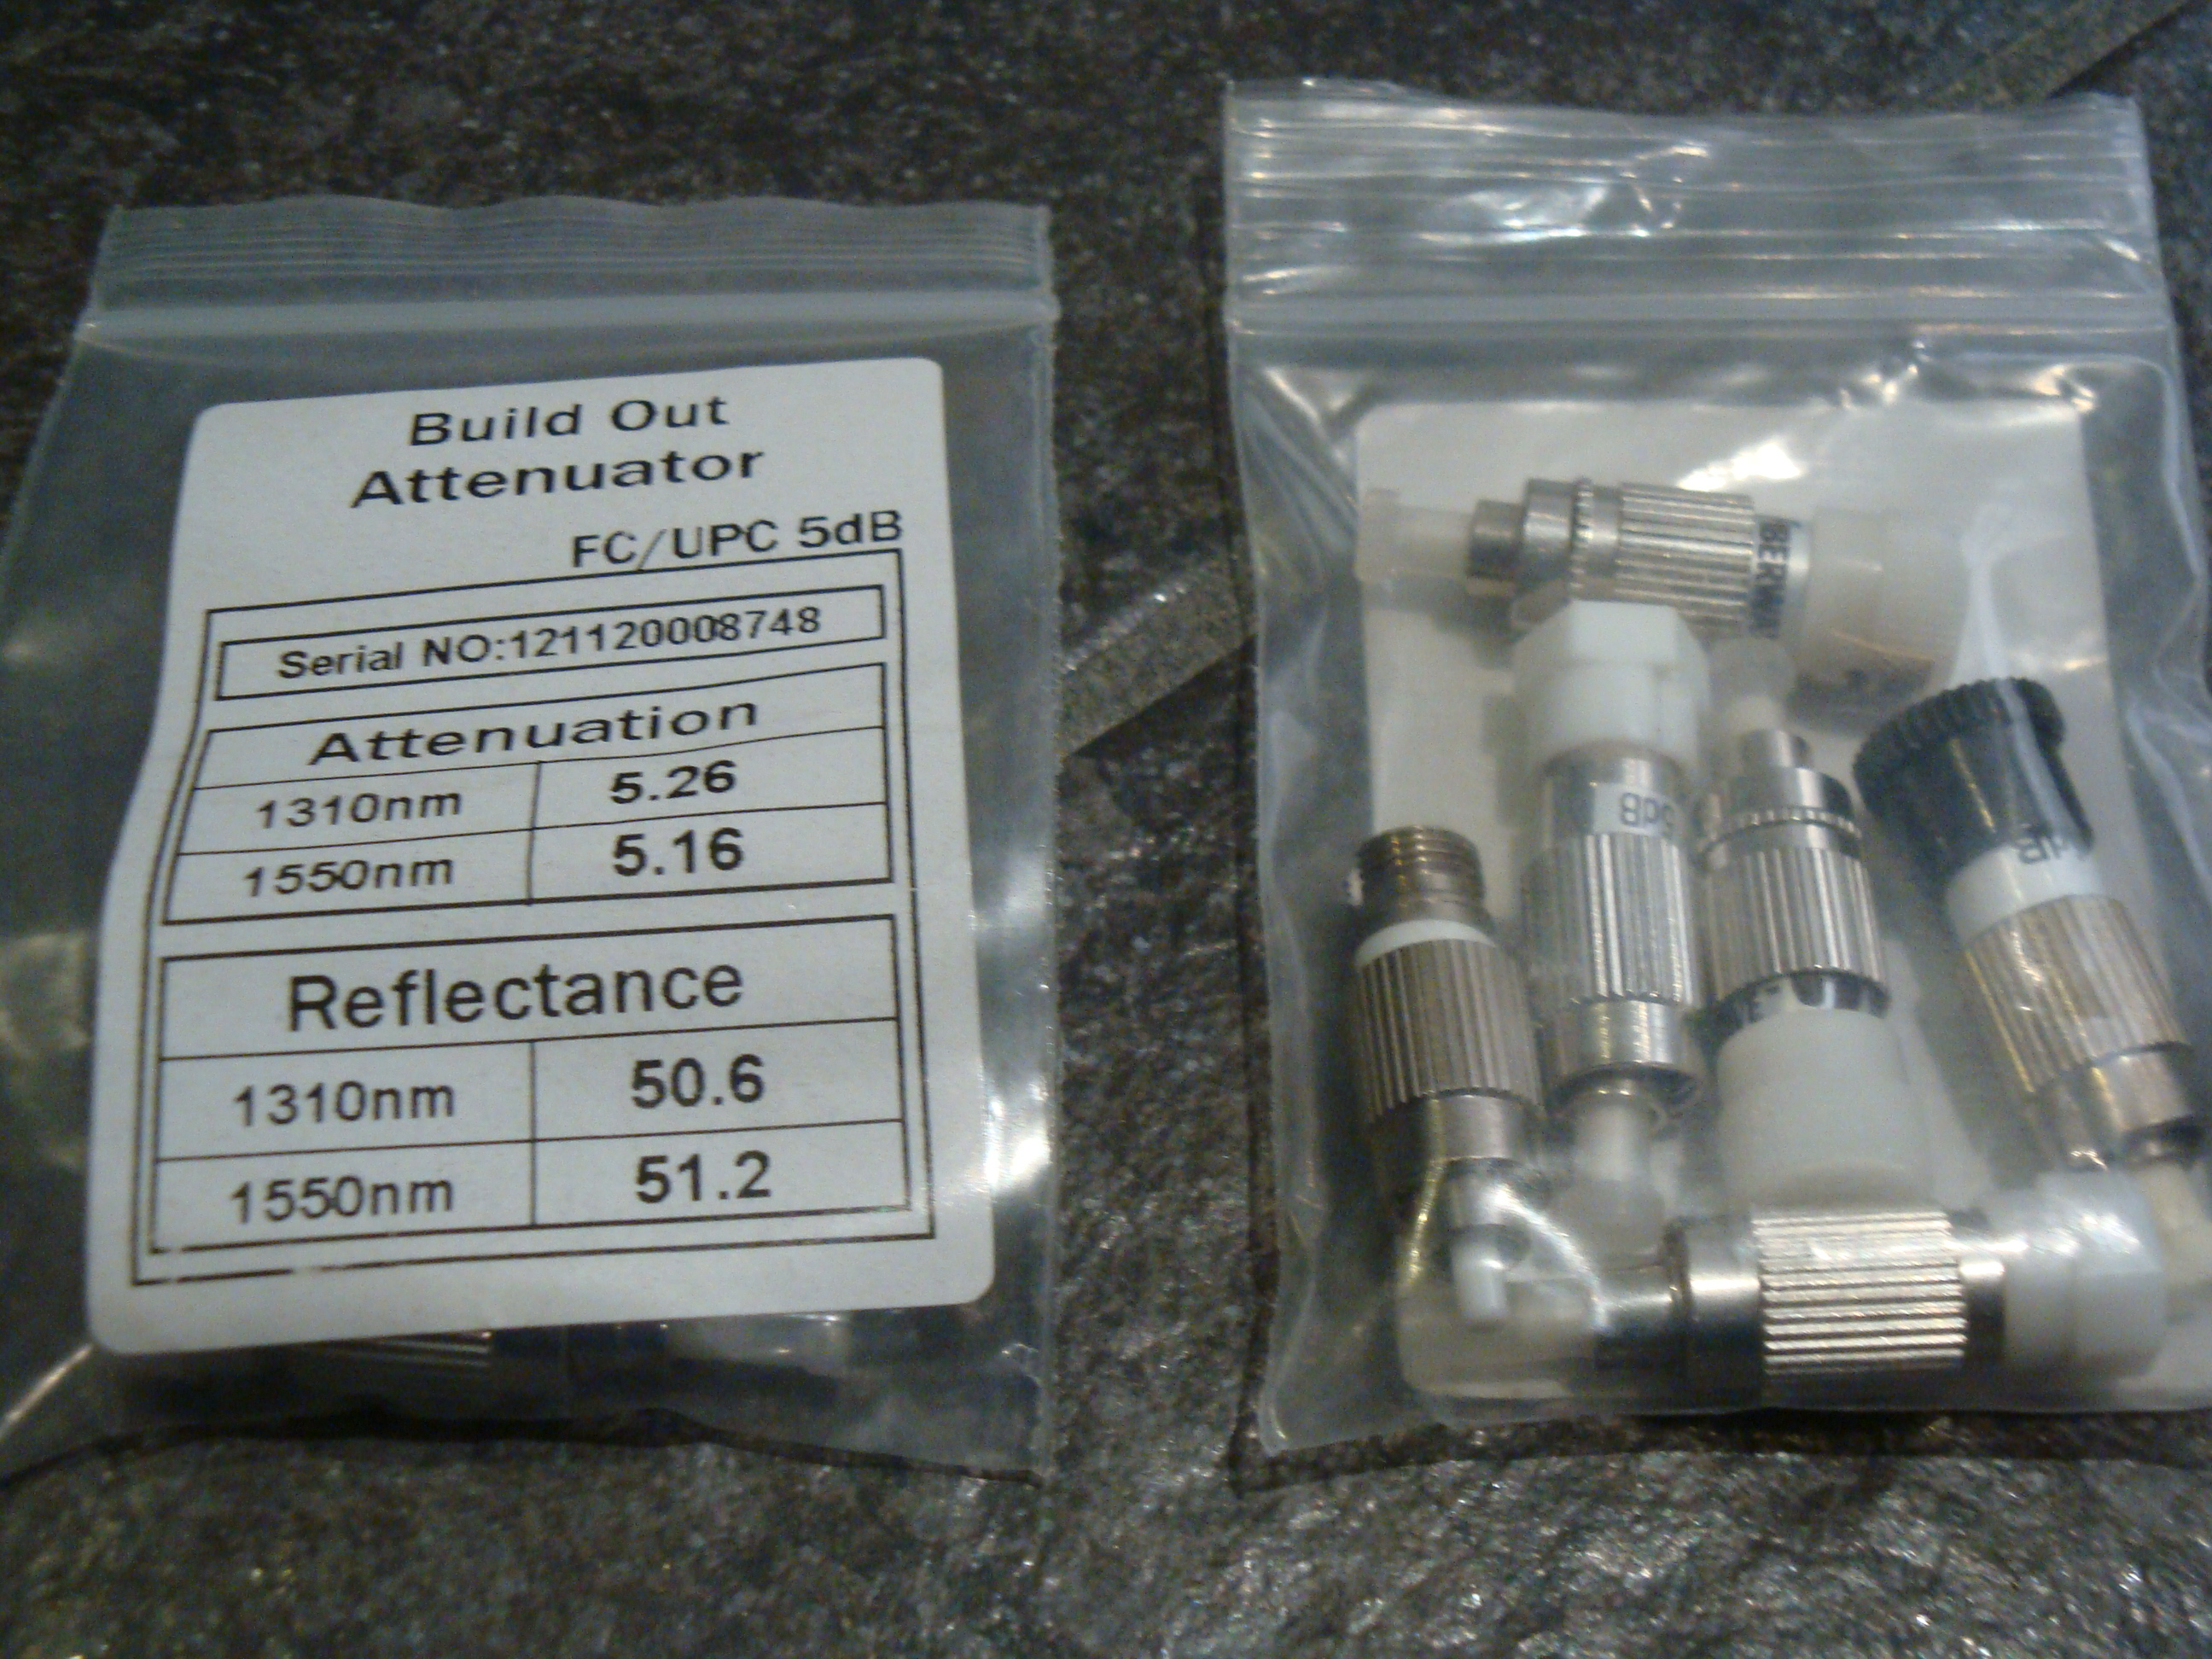 ATTENUATOR FC/UPC 5dB 7pc + 1pc 1dB total 8pcs